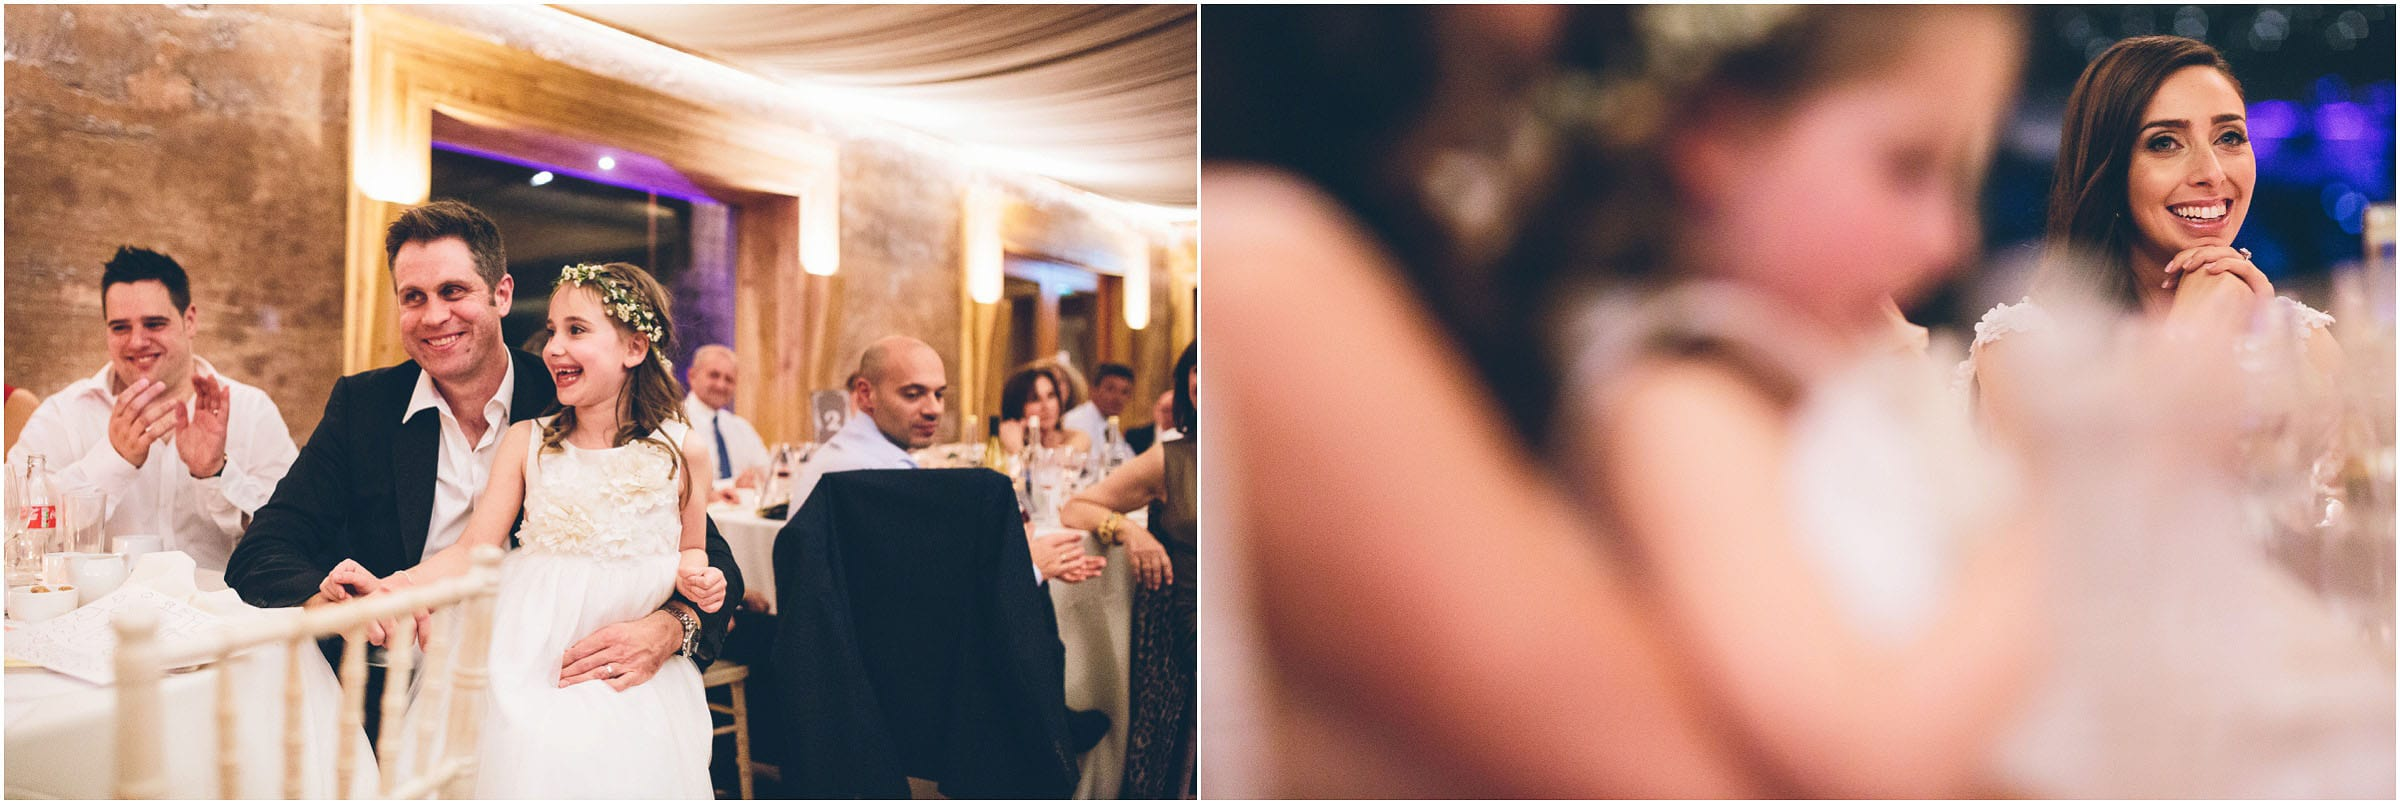 Elmore_Court_Wedding_Photography_0109